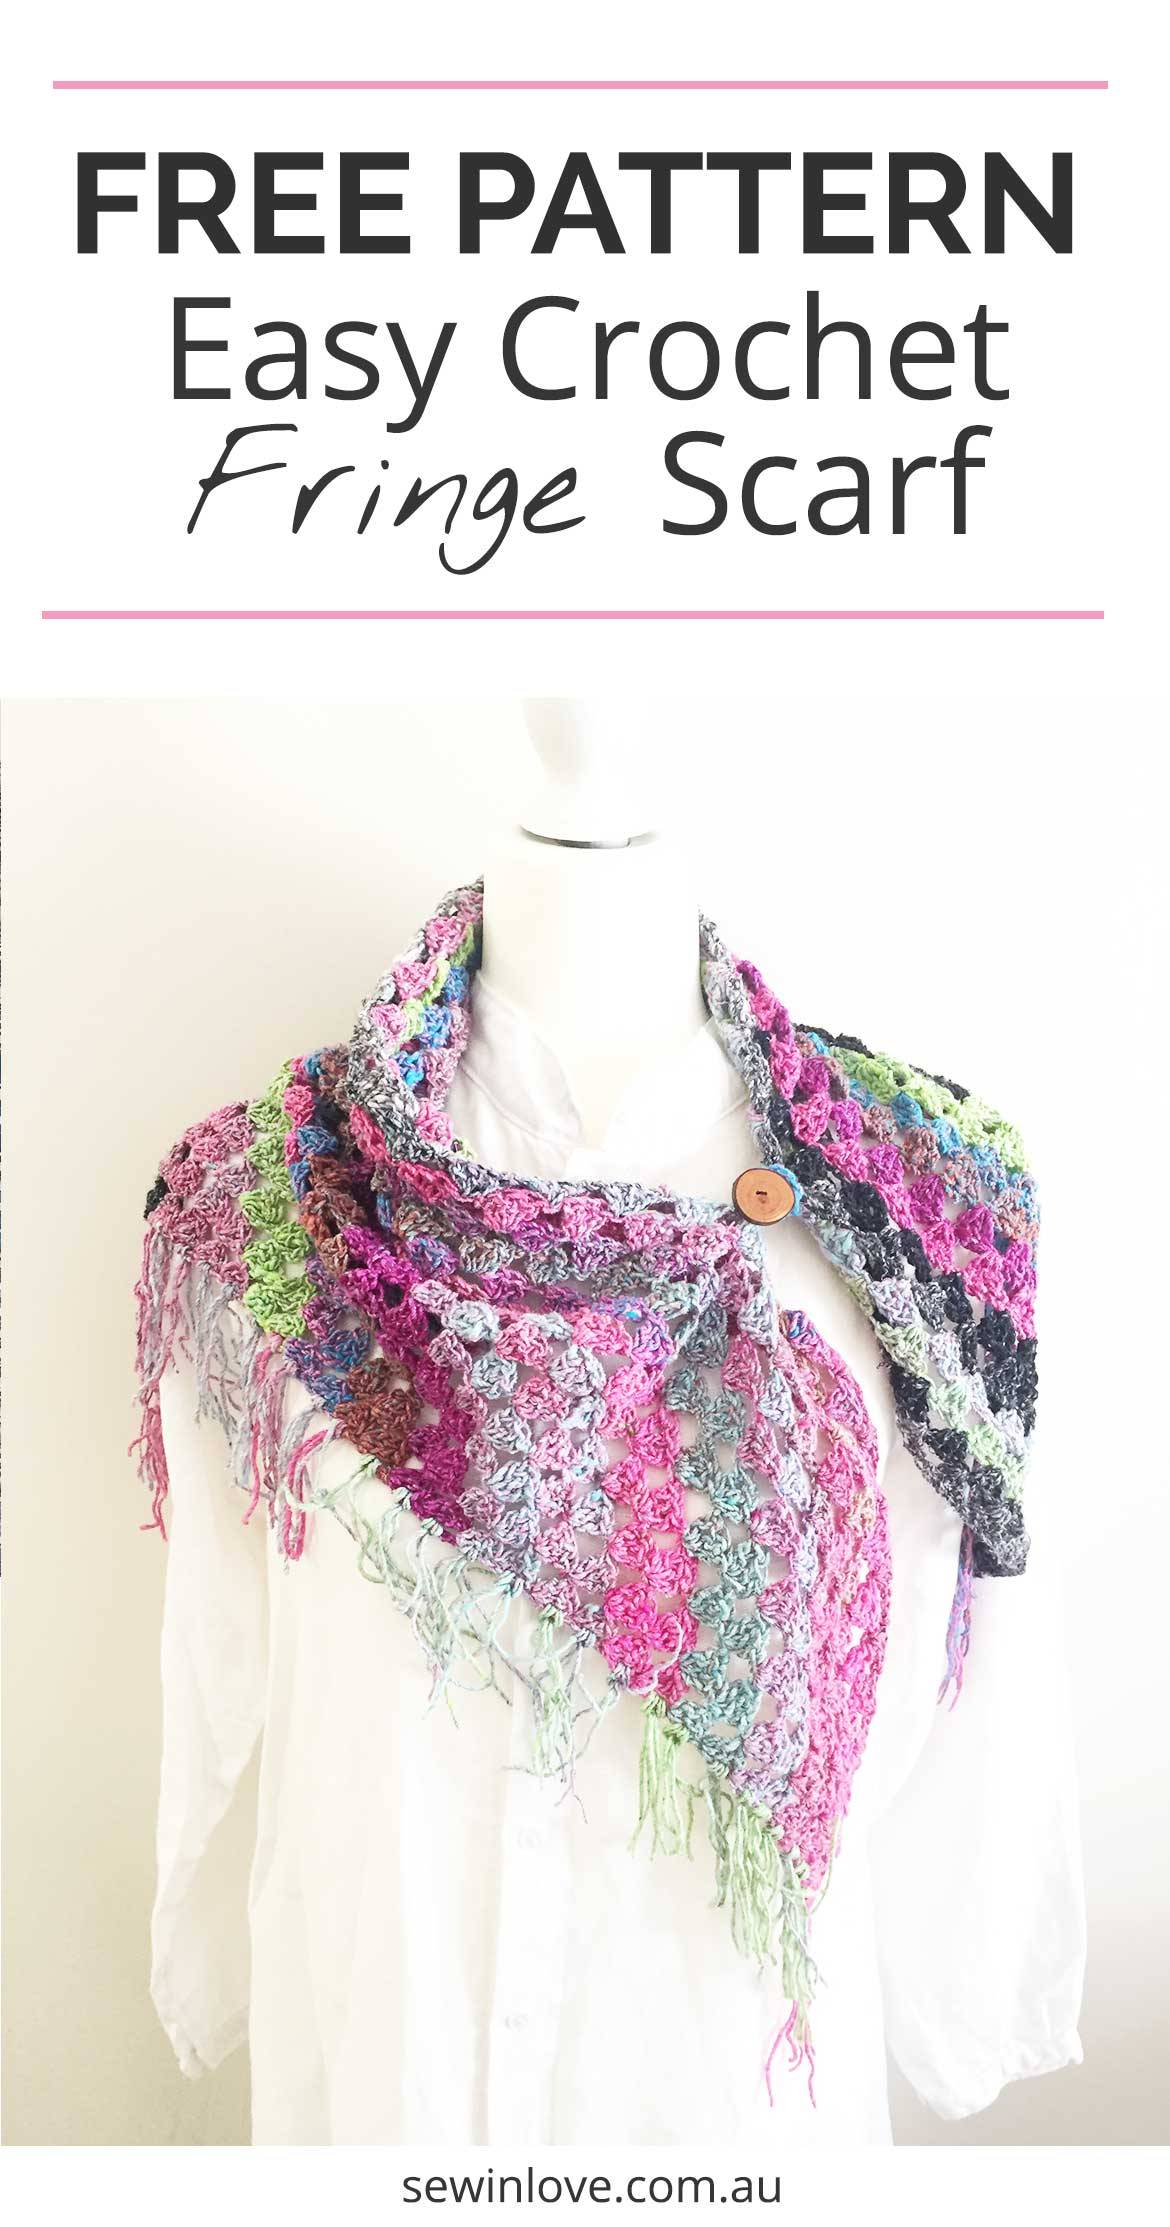 FREE Crochet Scarf Pattern: This easy scarf pattern includes a free video tutorial which shows you how to crochet. I made mine using Noro silk and wool yarn.